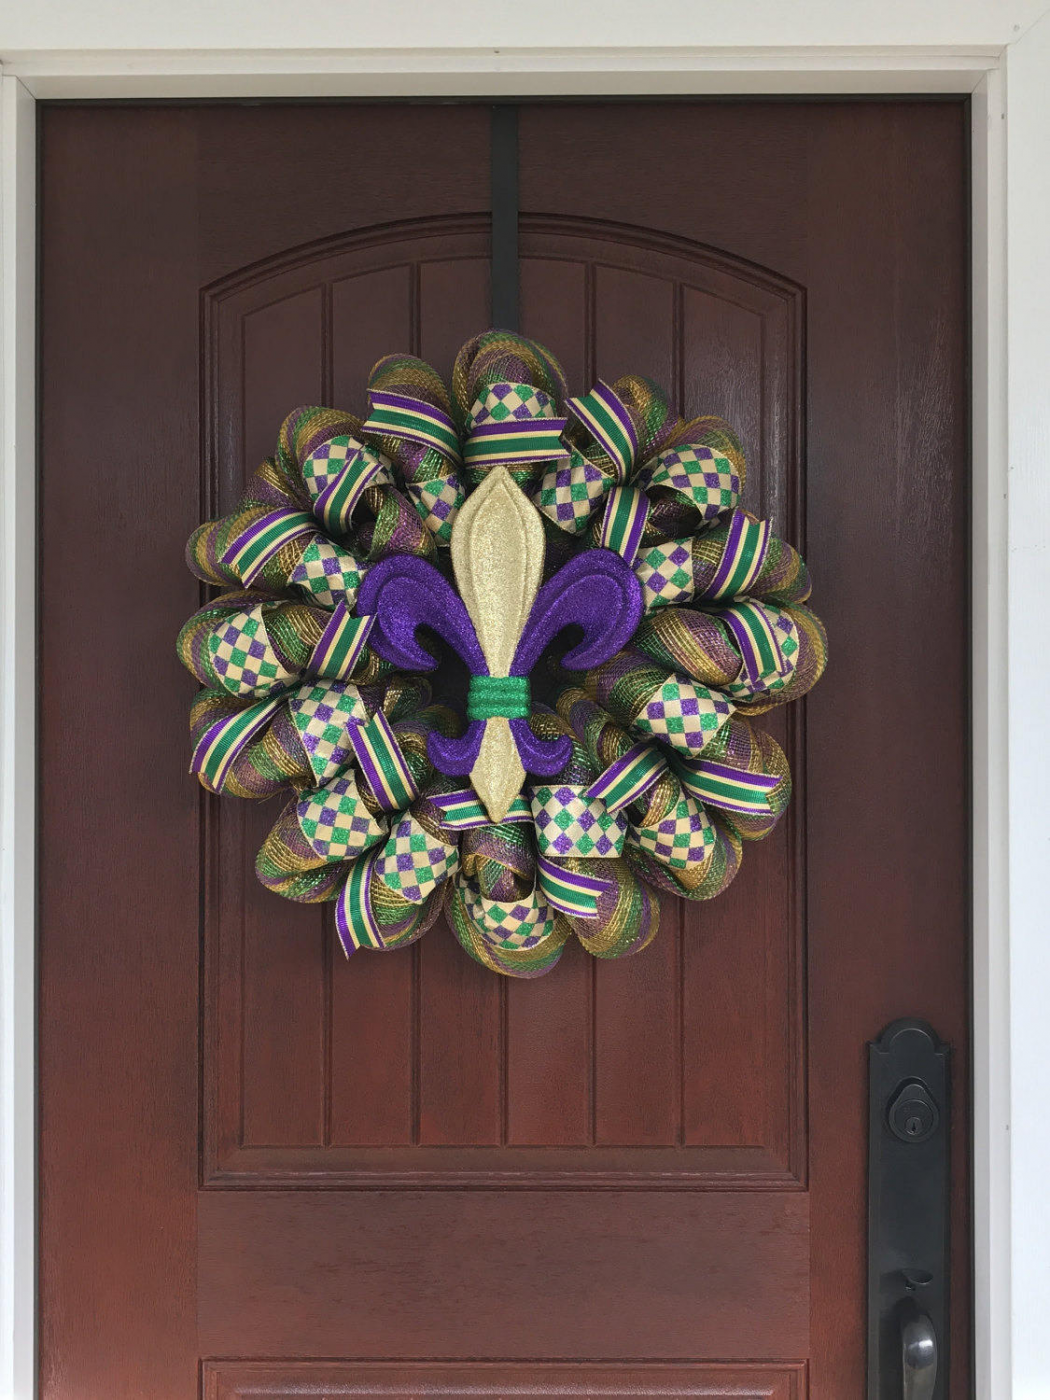 word-image-14 Fat Tuesday is Coming! 11 Classy Mardis Gras Wreaths for Your Front Door